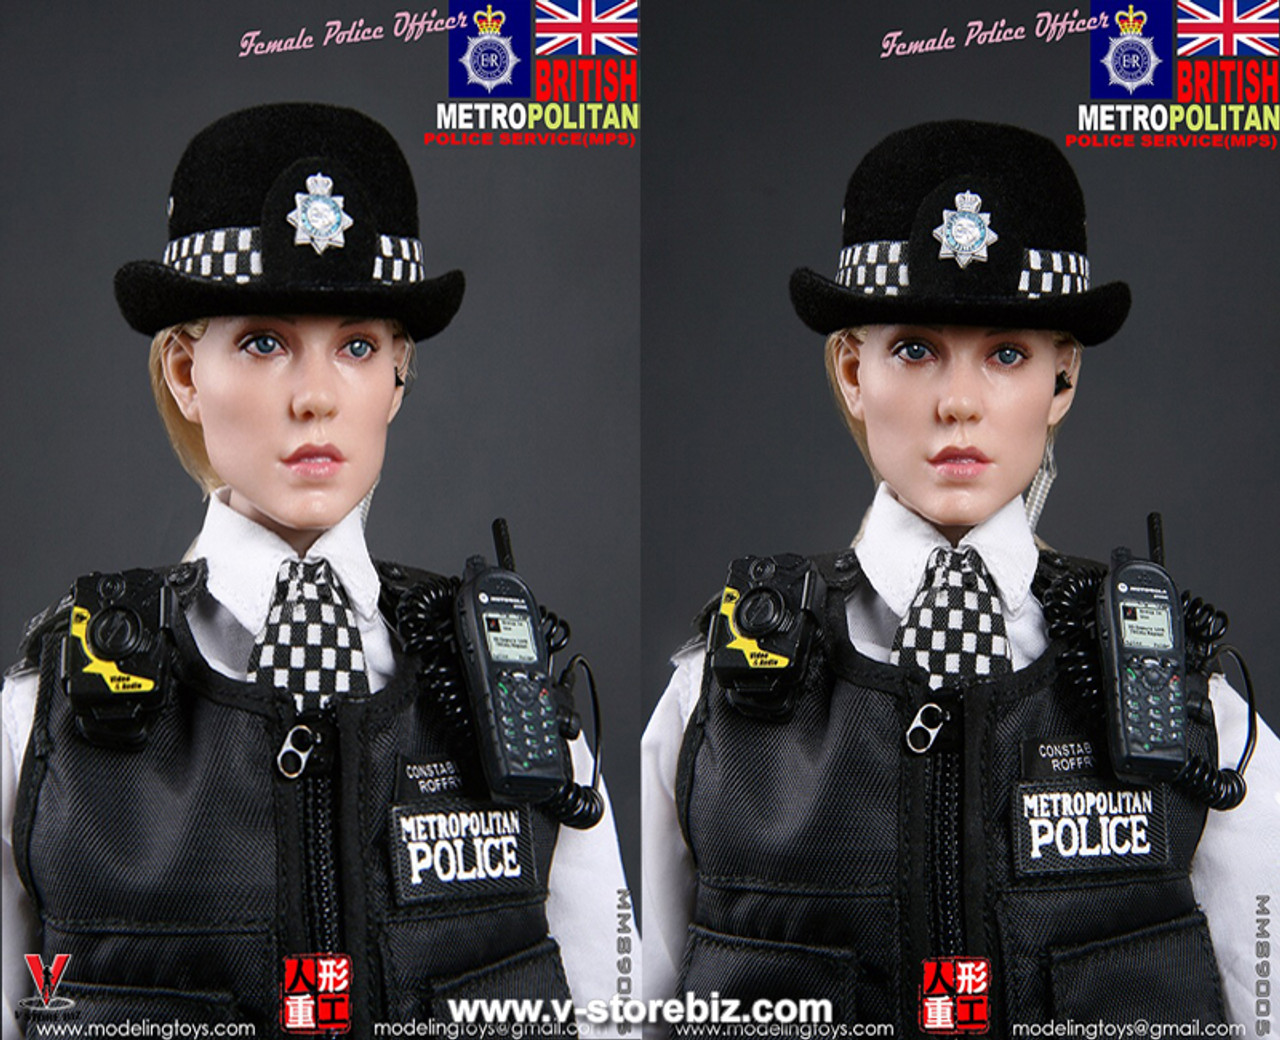 MODELING TOYS 1//6 MILITARY SERIES MPS BRITISH METROPOLITAN POLICE SERVICE